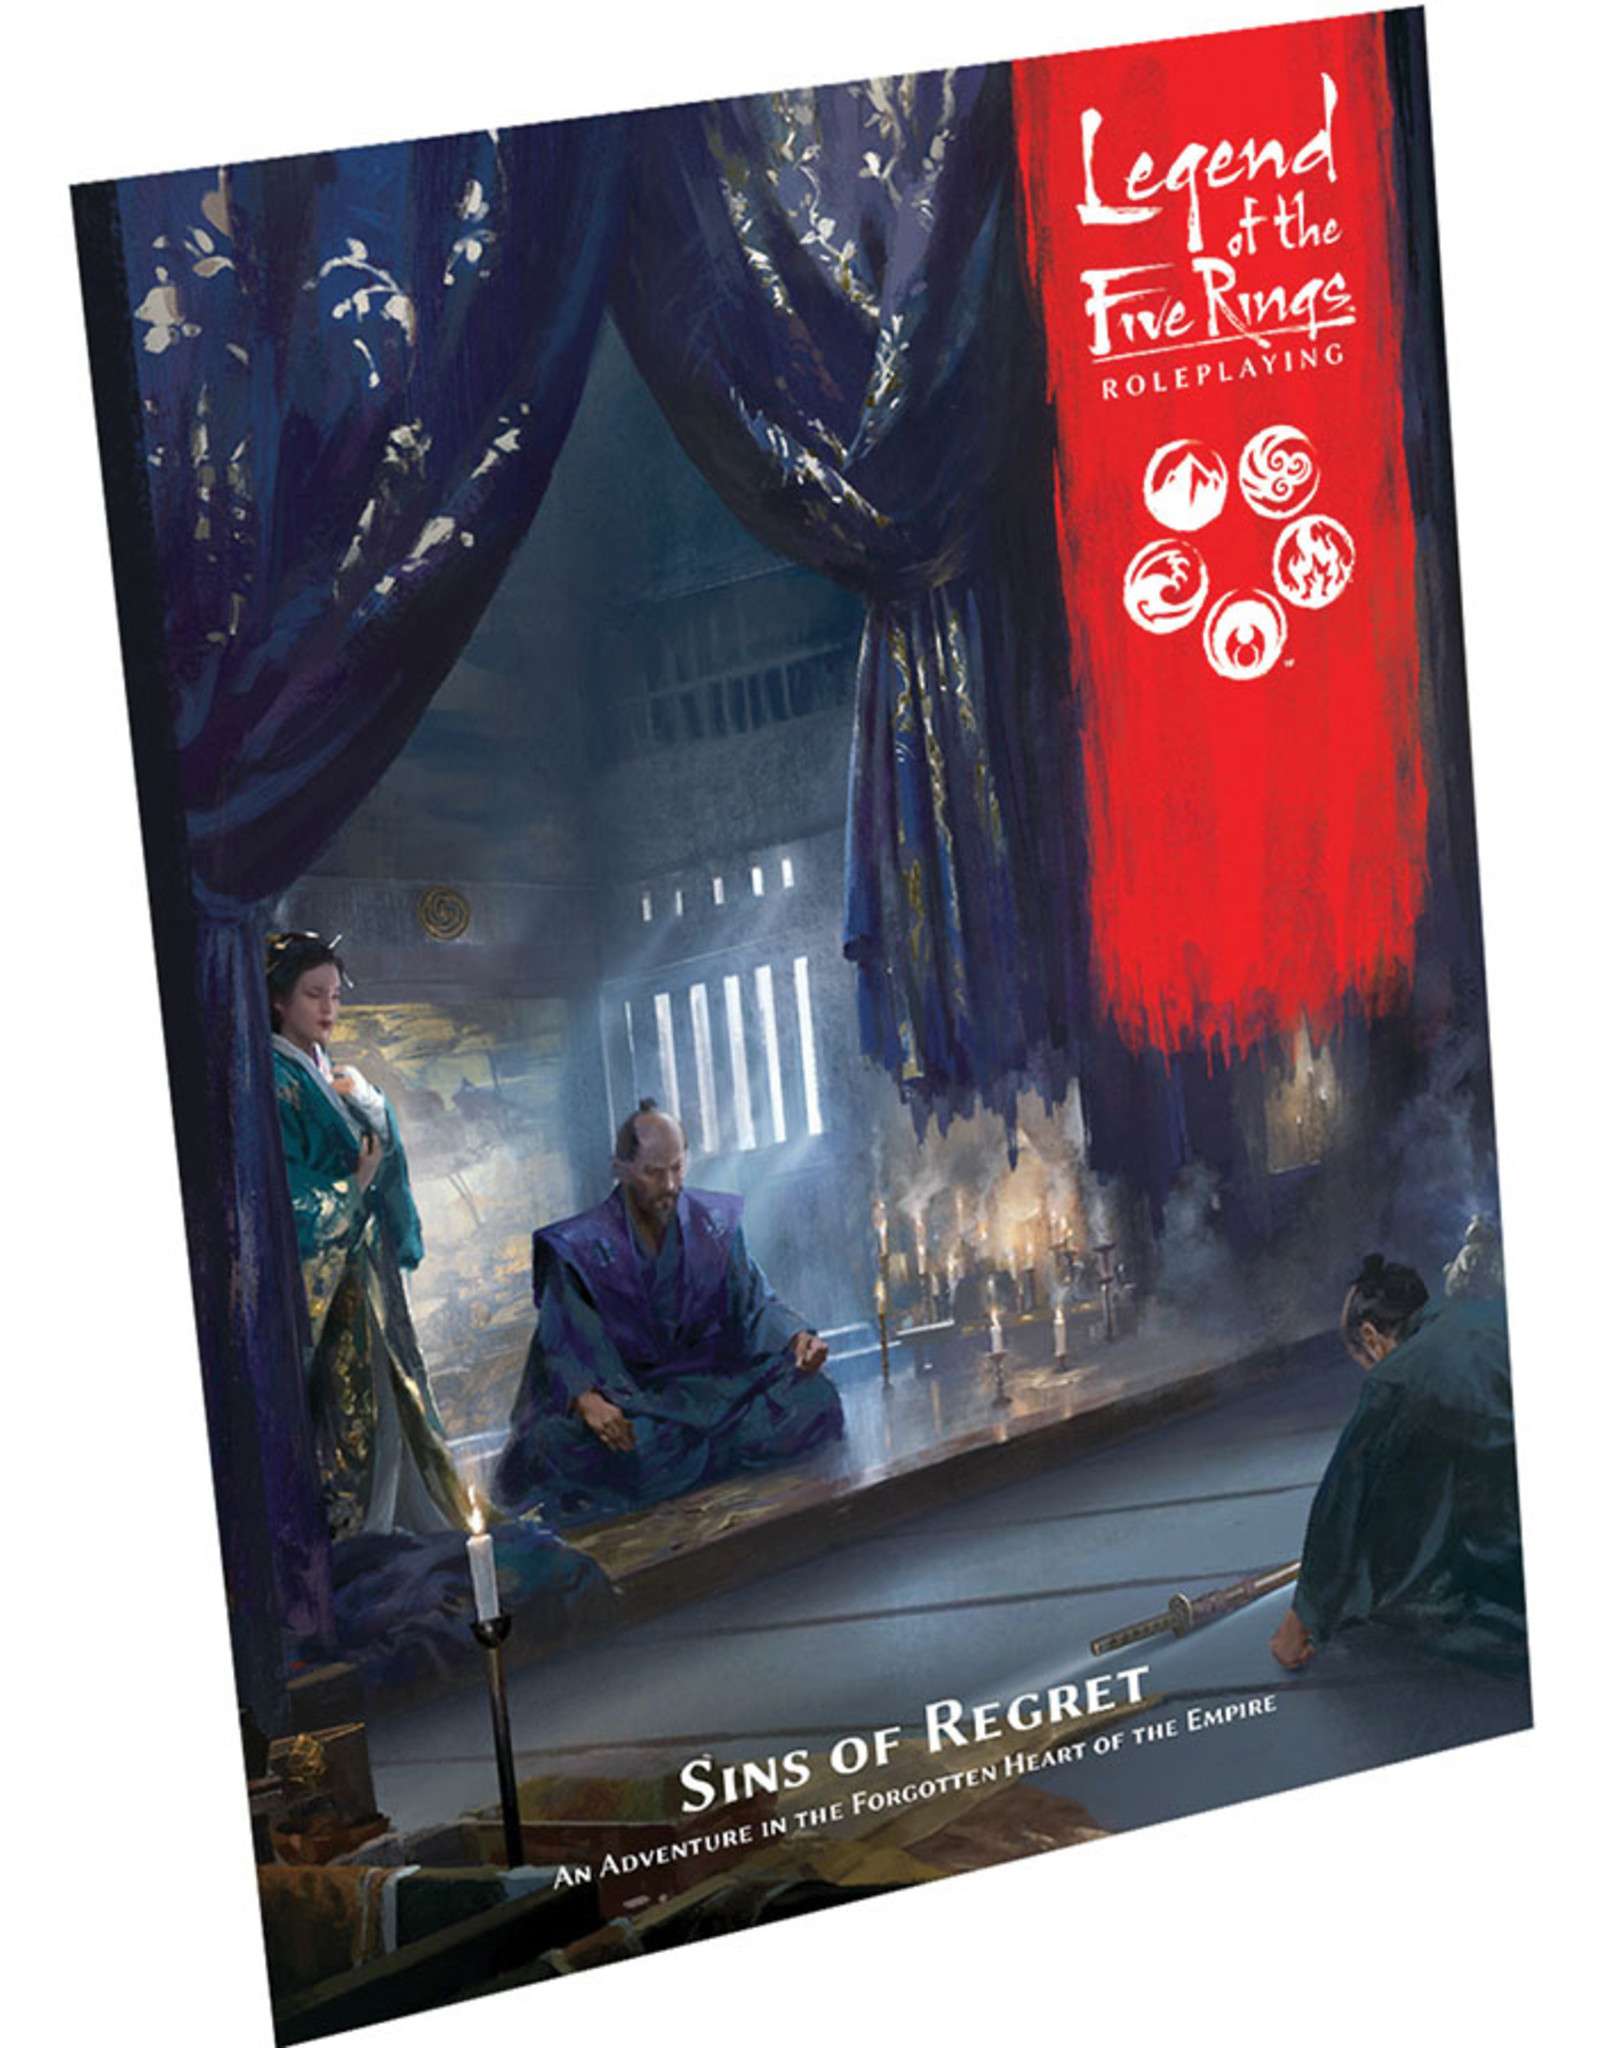 Role Playing Legend of the Five Rings RPG: Sins of Regret